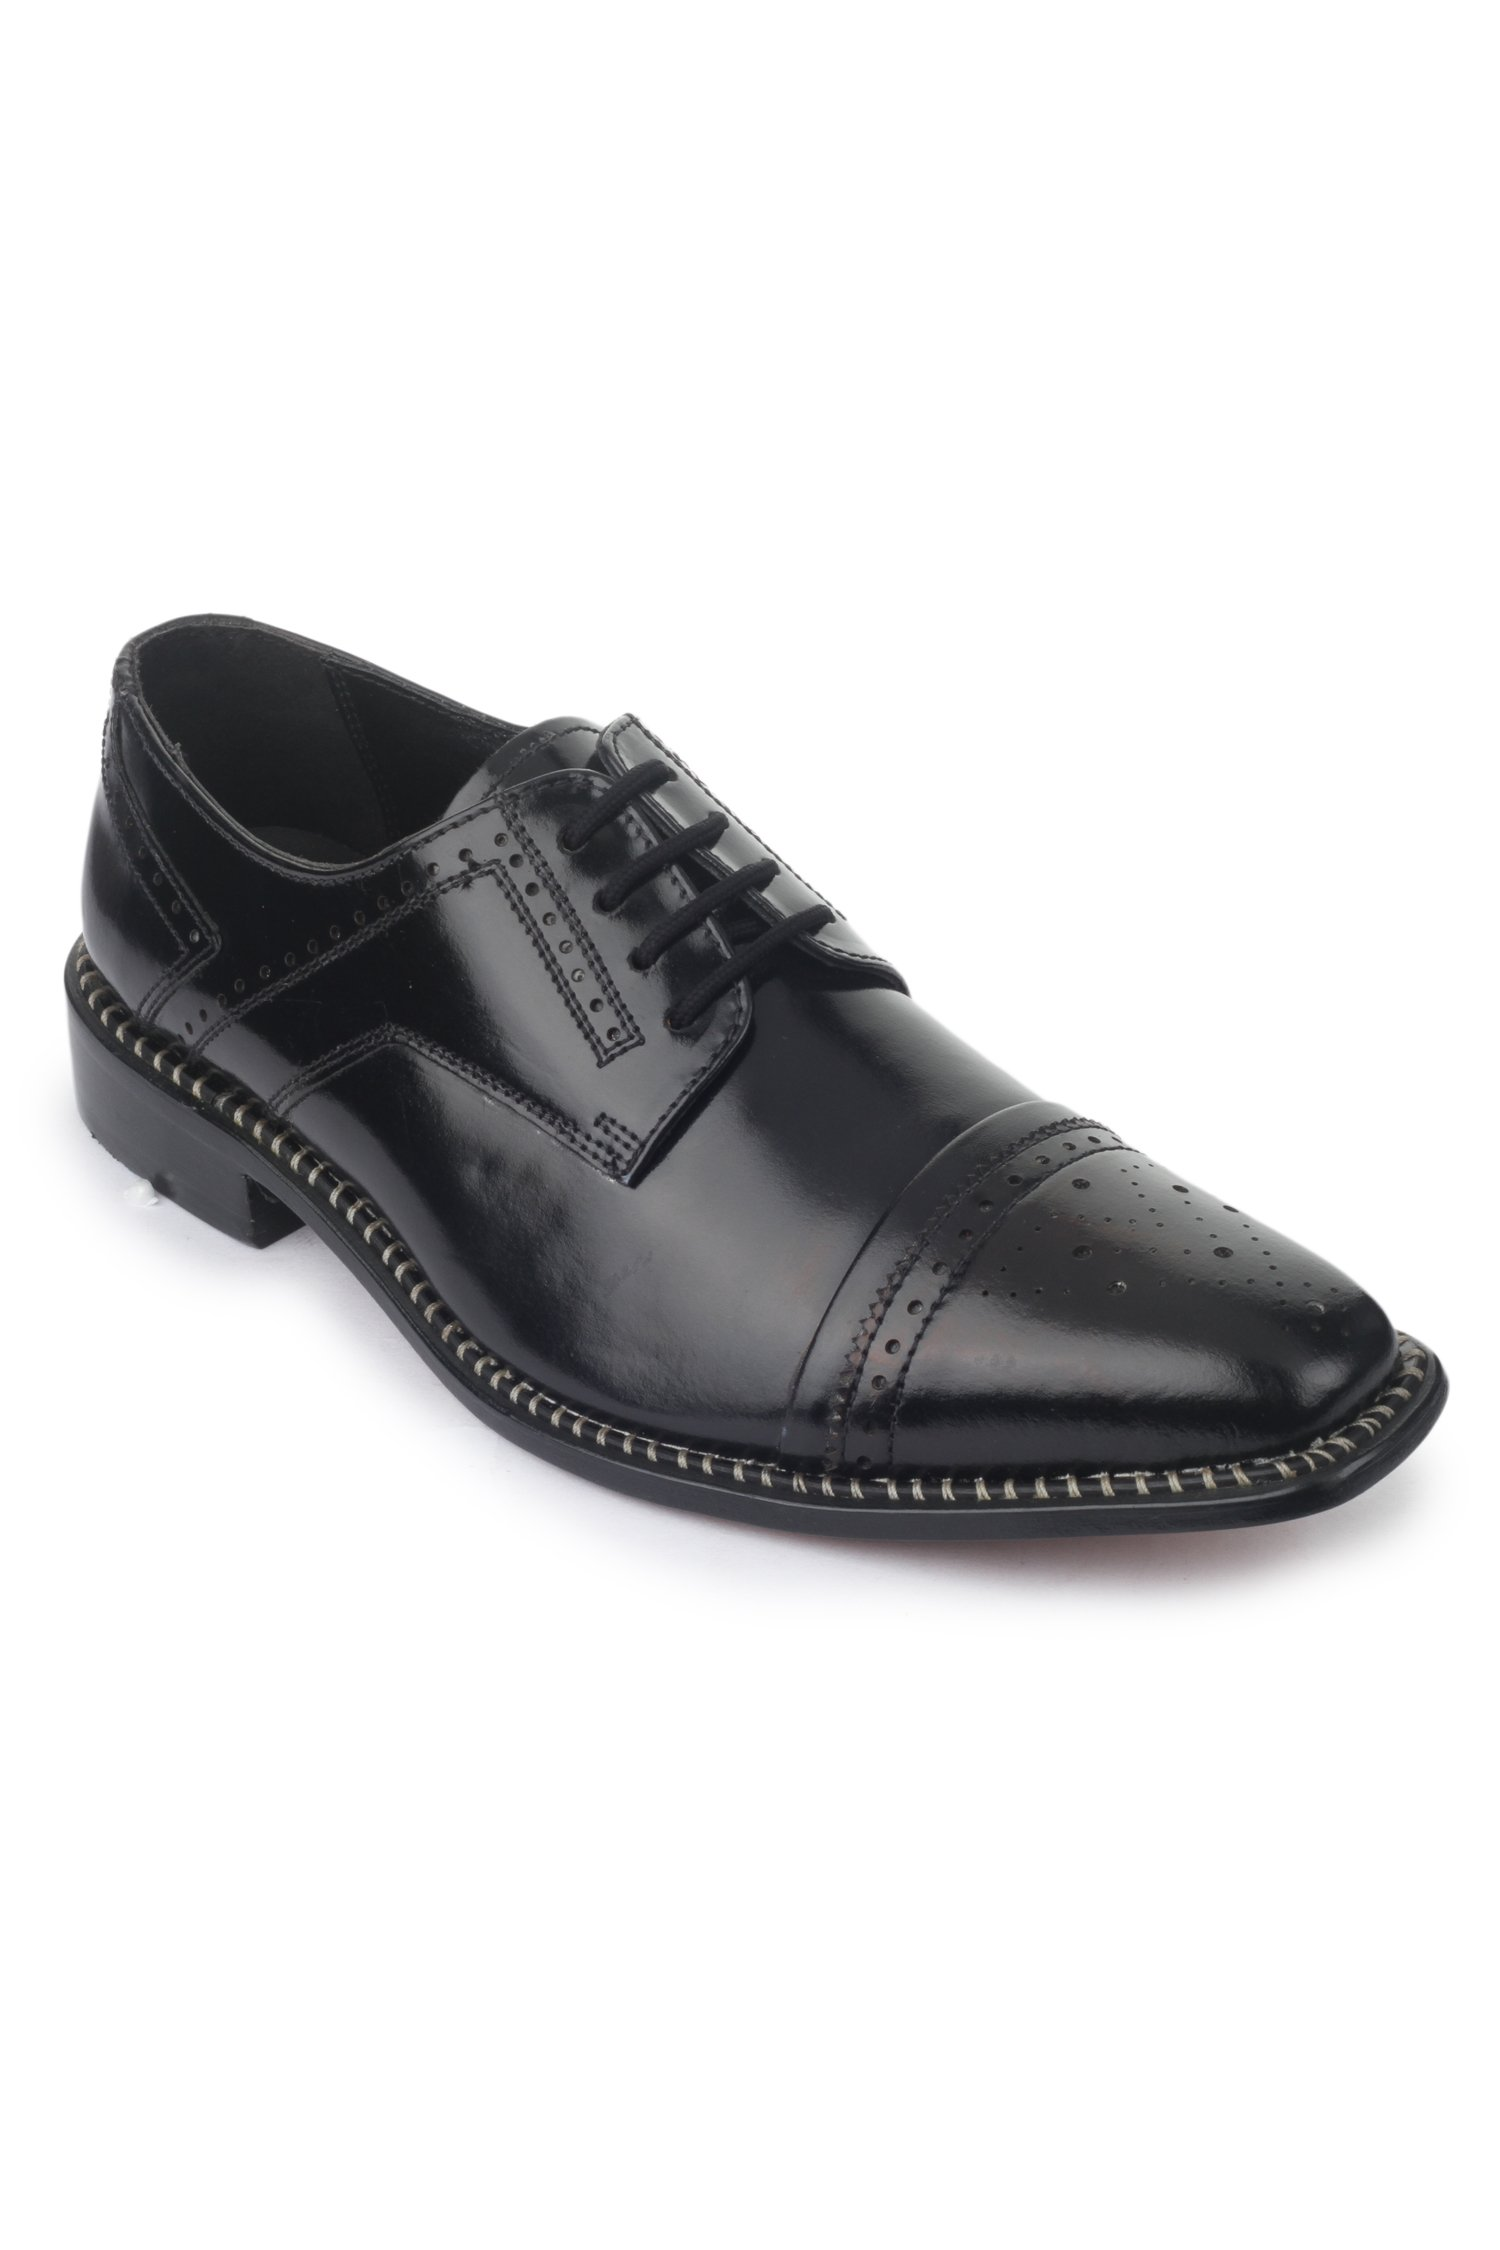 Liberty Fortune Handmade Mens Leather Classic Oxford Cap Toe Lace Up Dress Shoe 14